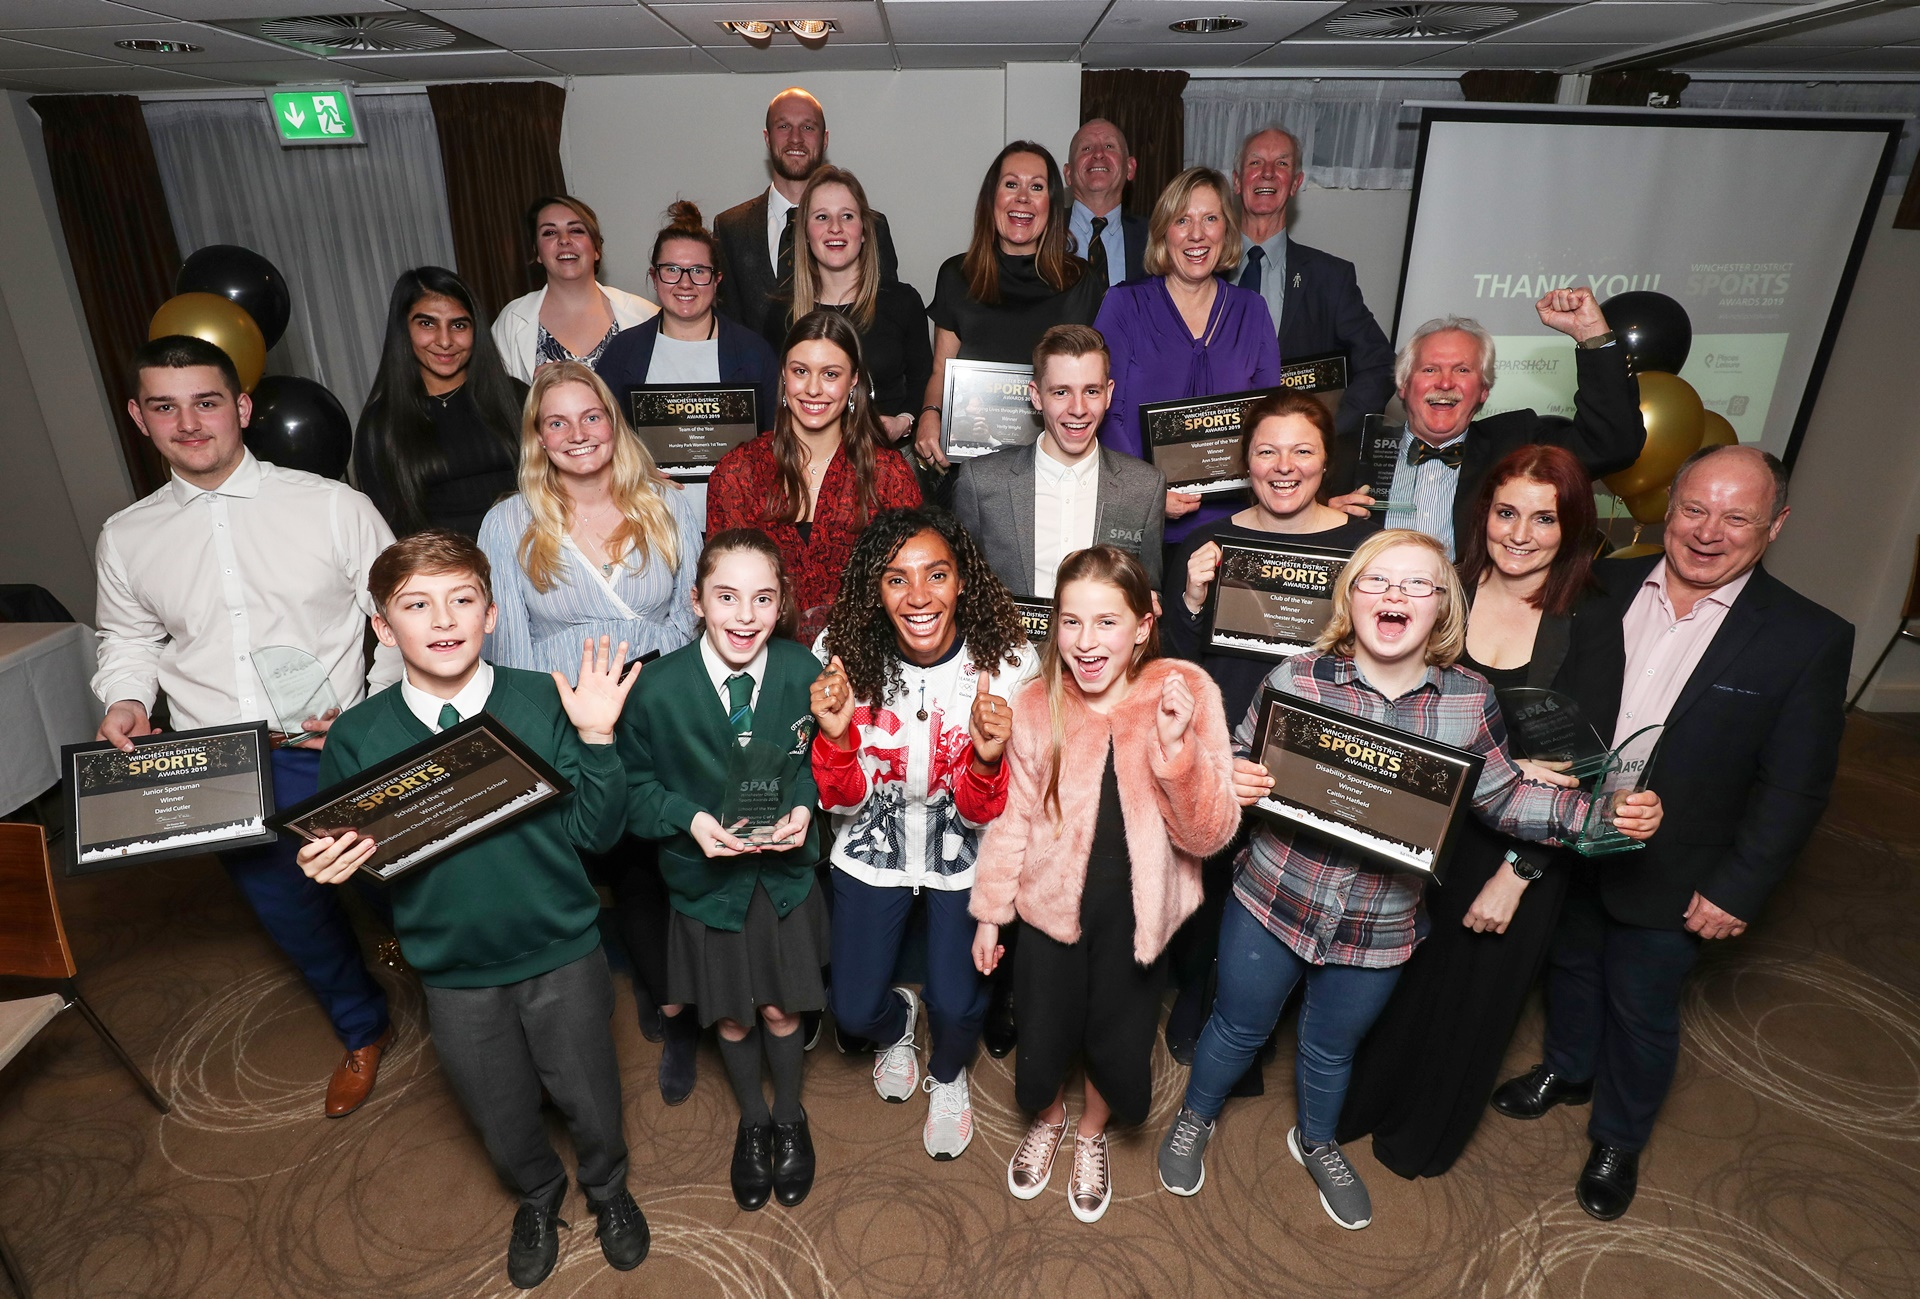 2019 Winchester Sports Awards